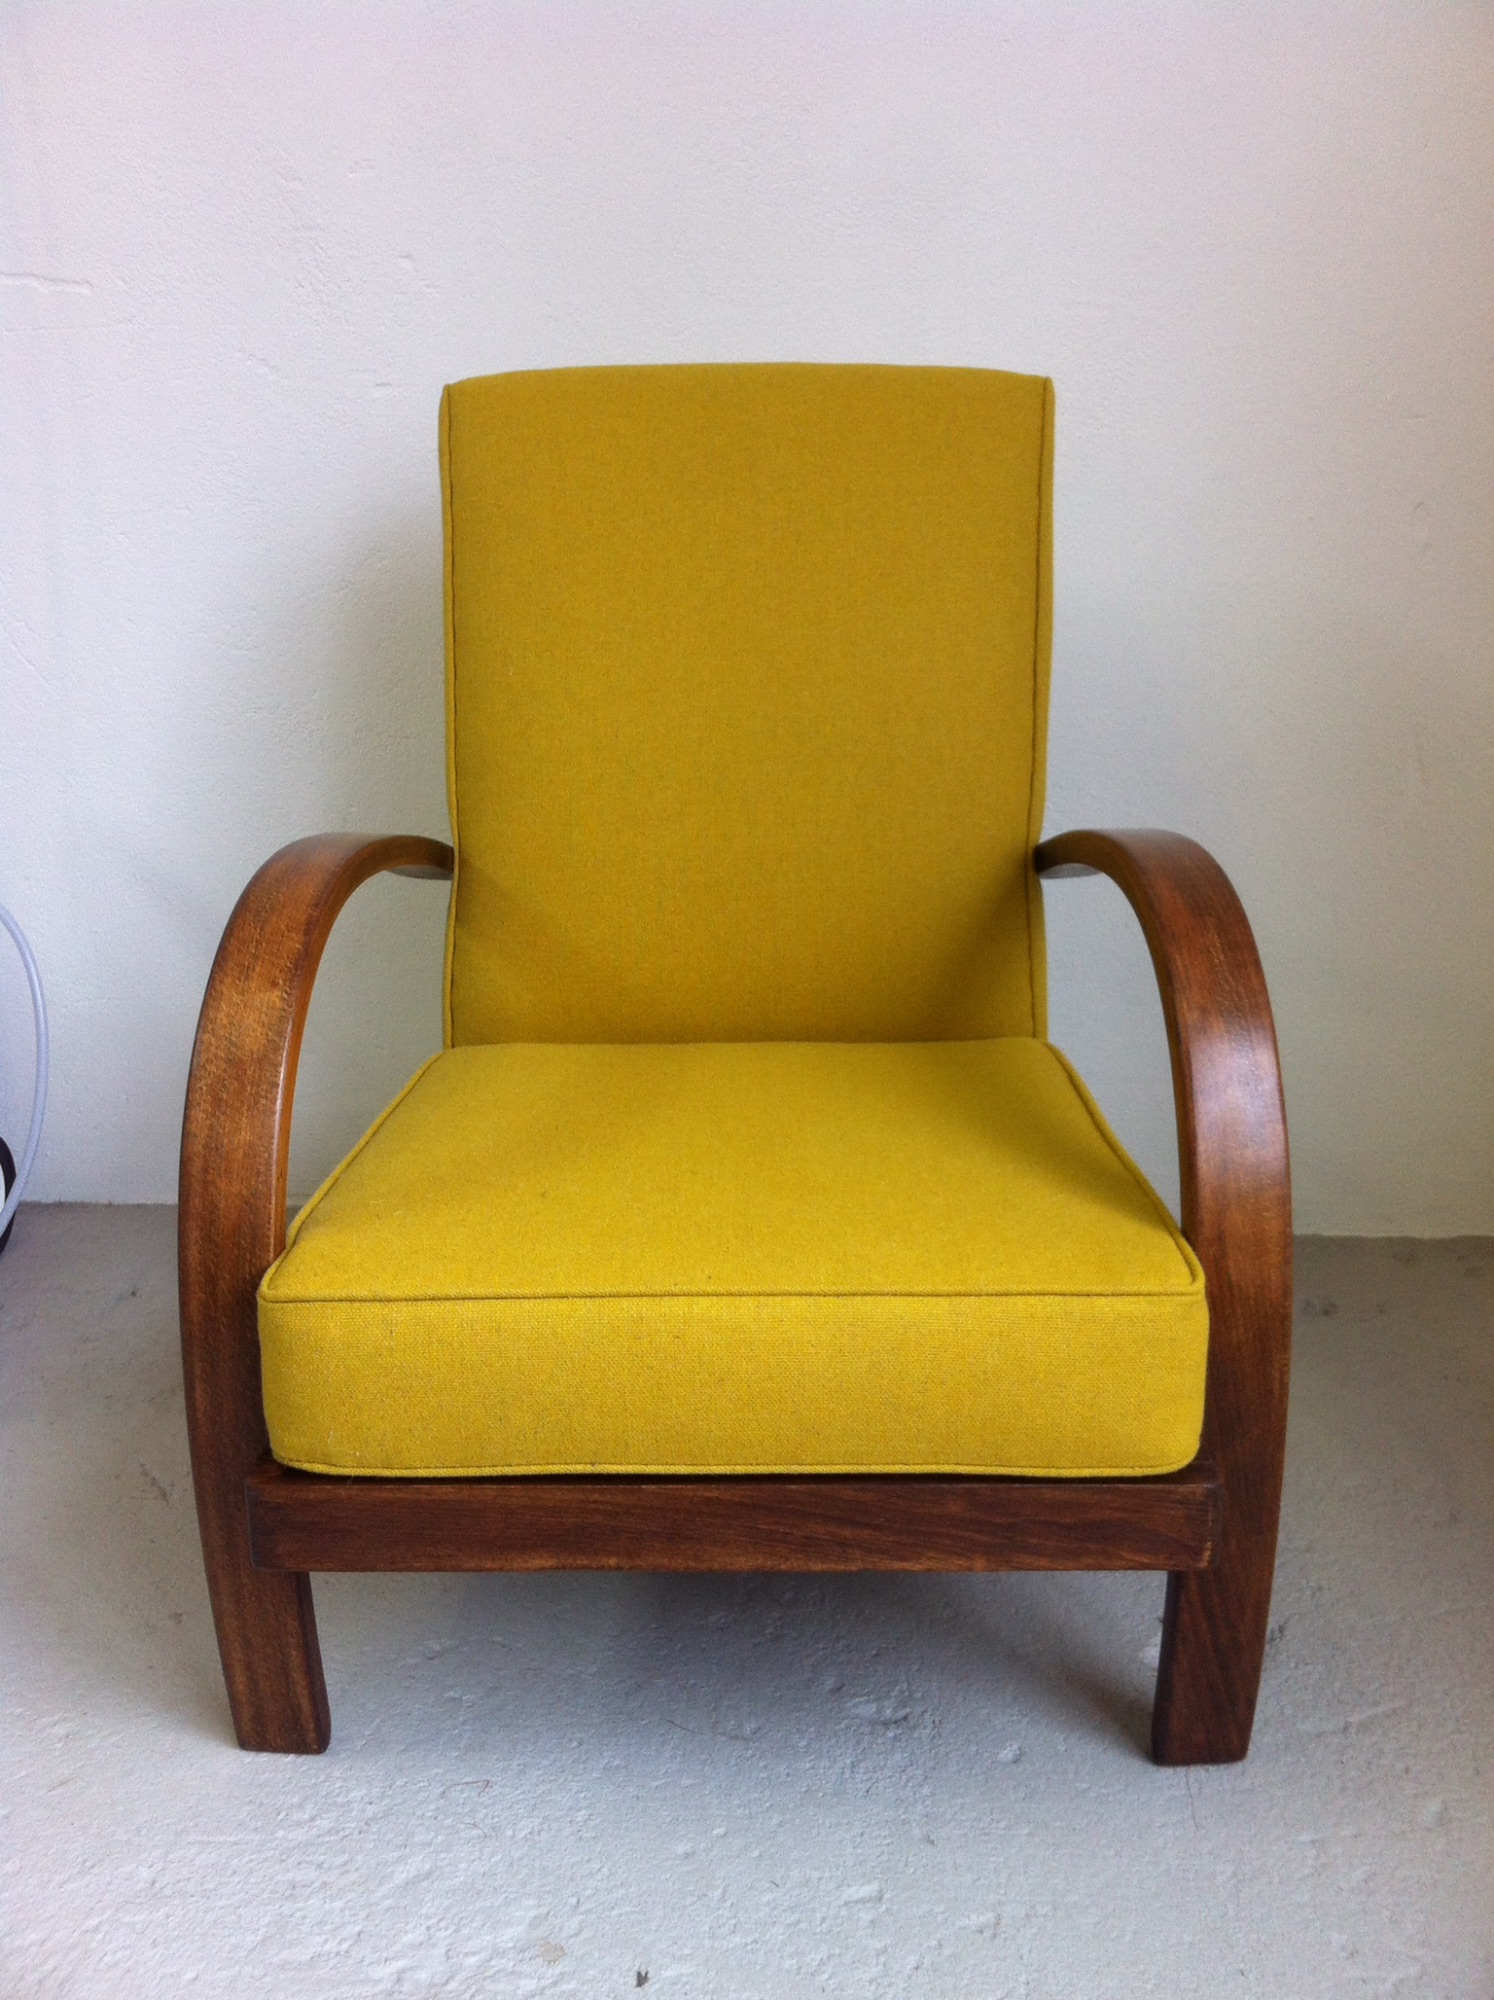 Bentwood arm chair in Camira's mainline flax fabric by Spring Upholstery Brighton